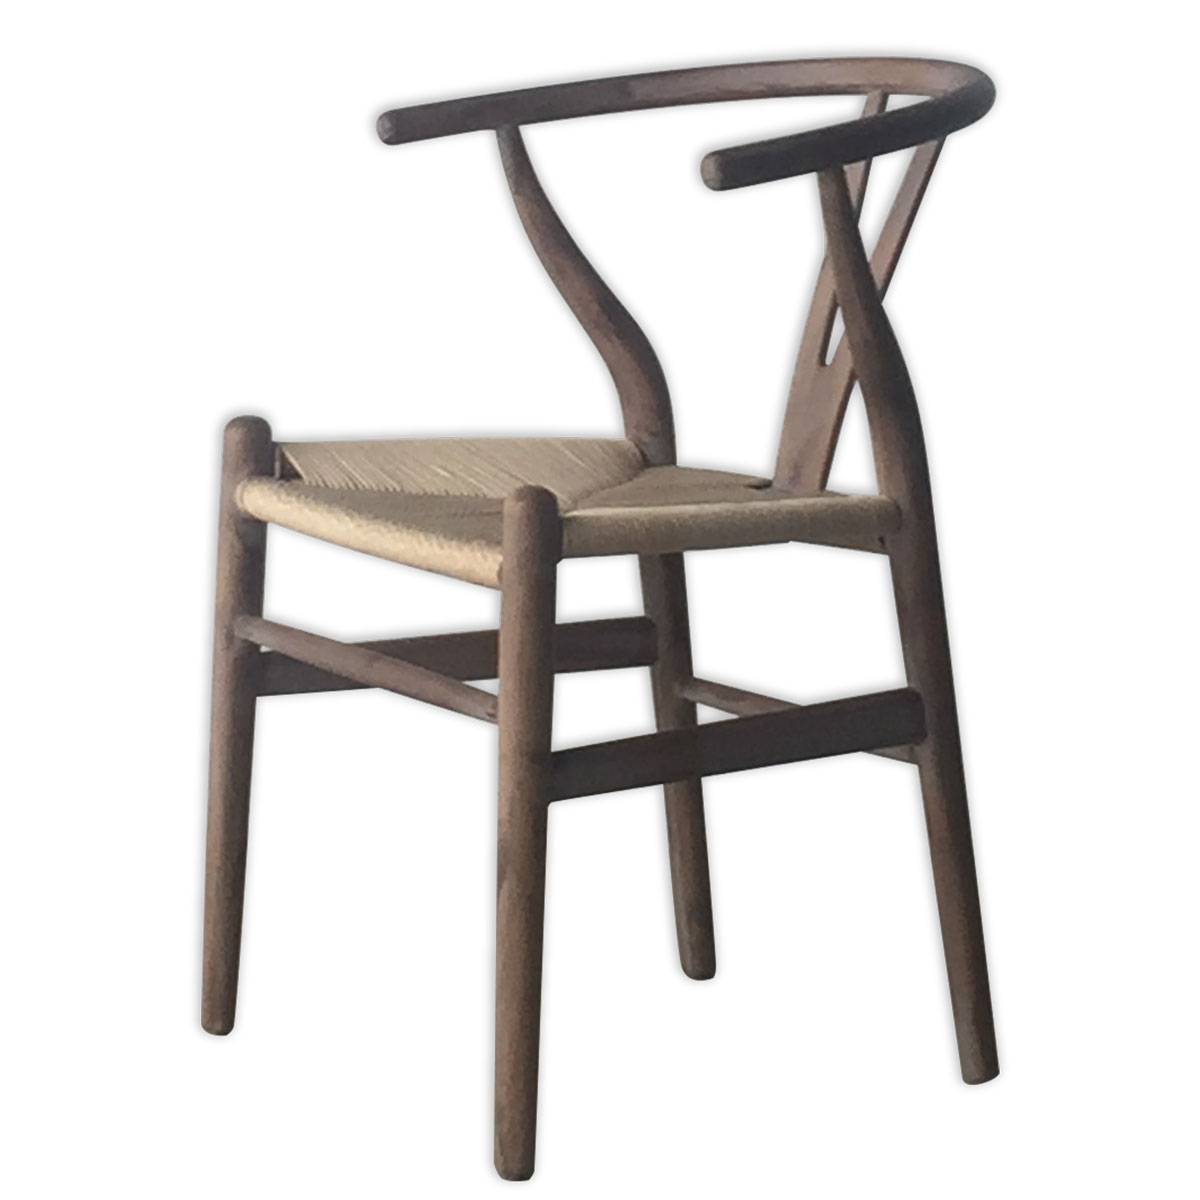 SILLA WISHBONE ANTIQUE GRIS